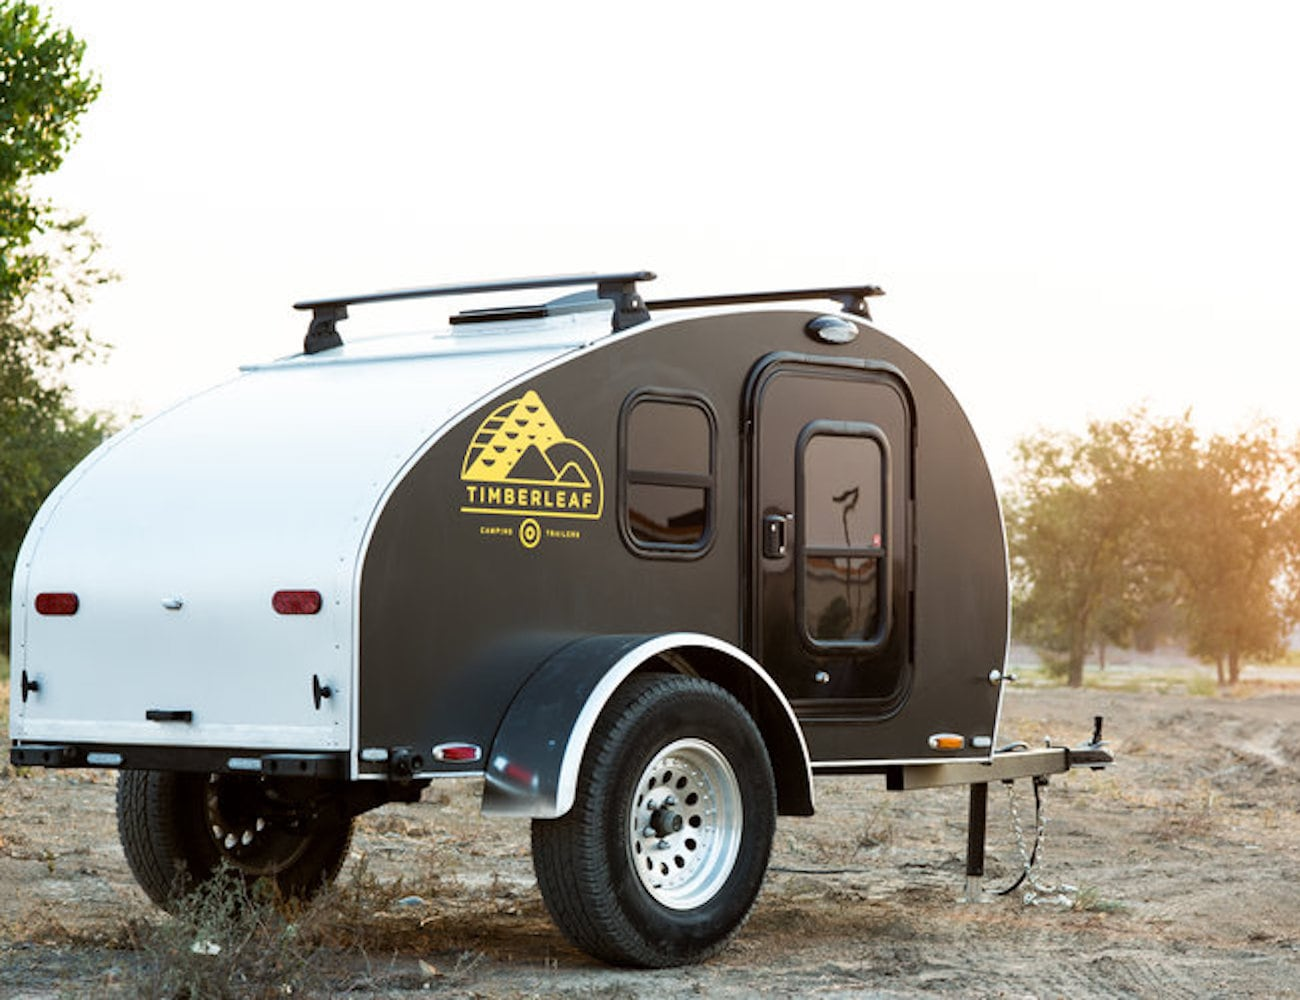 These teardrop trailers give you the best night's sleep ...